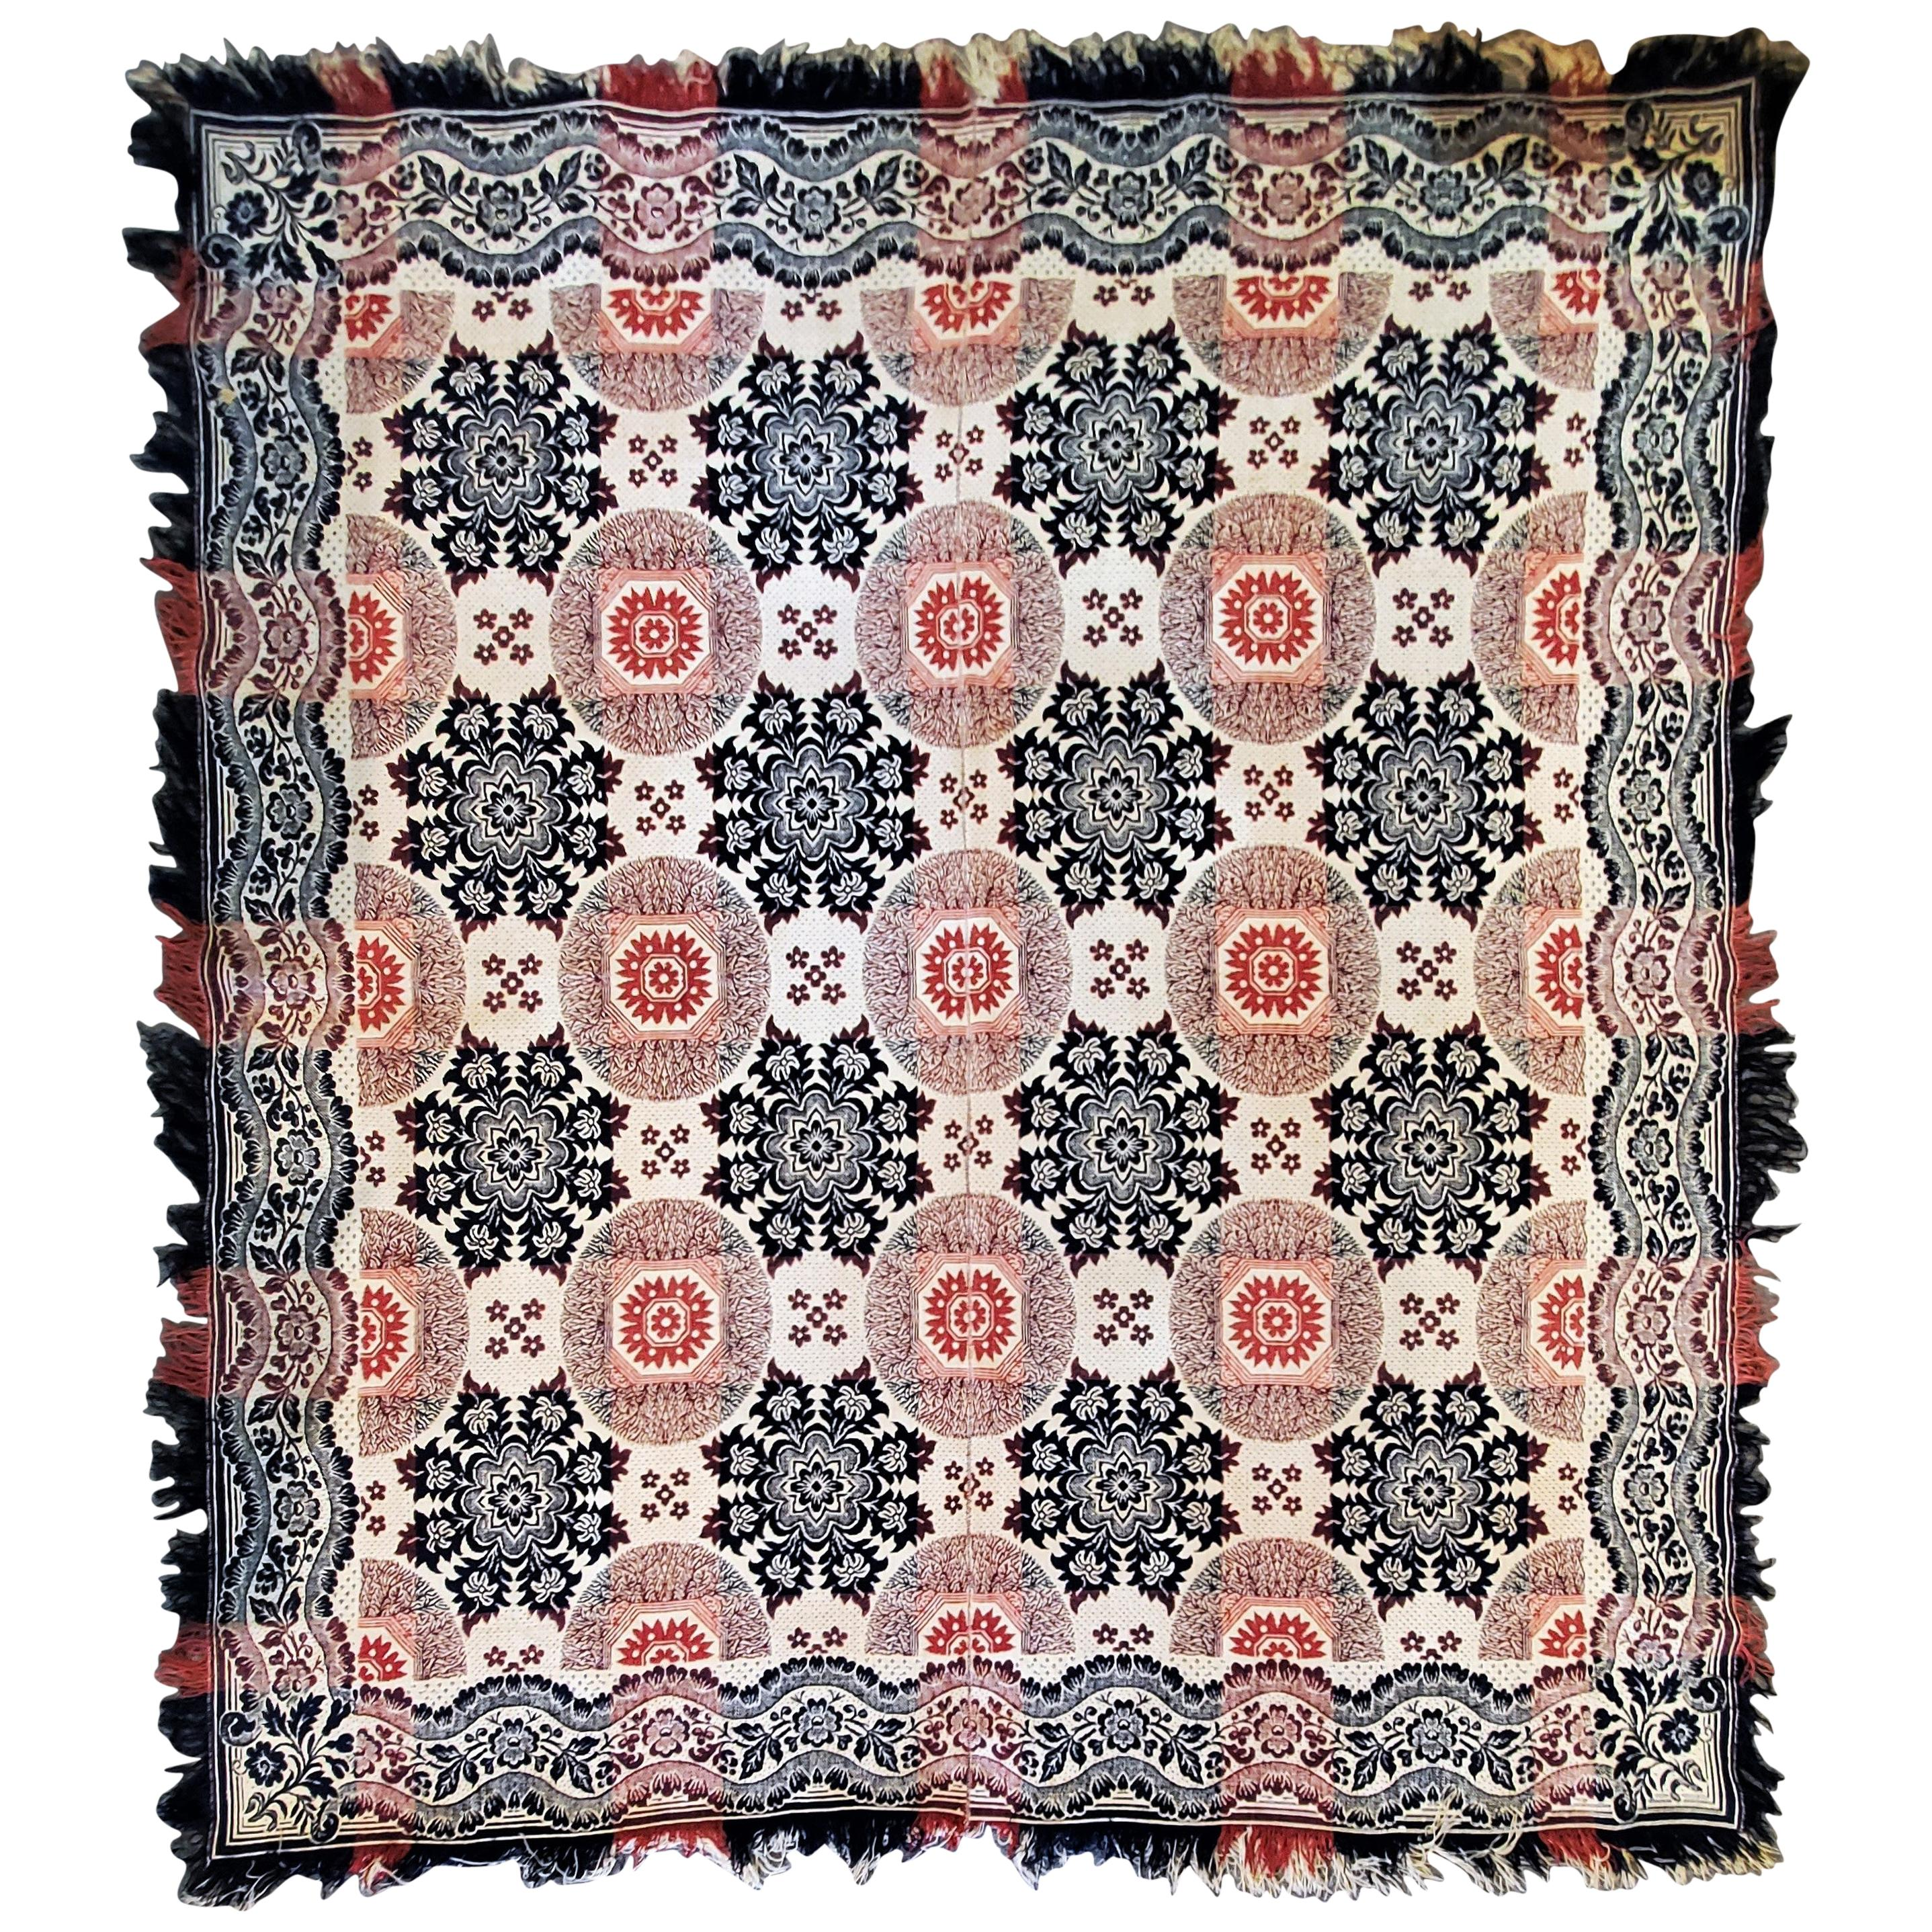 19th Century Jacquard Woven Coverlet with Fringe